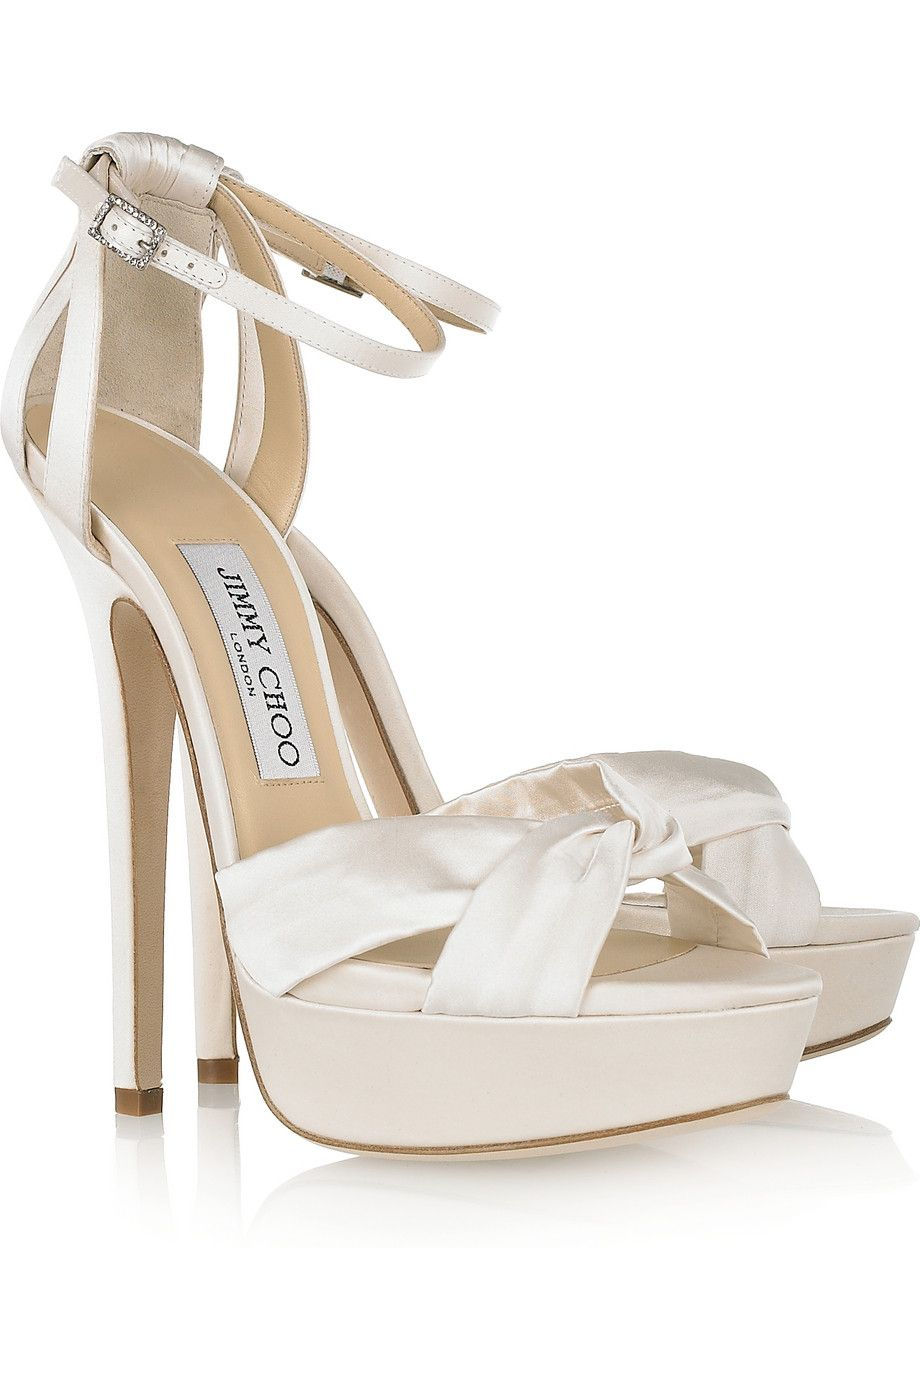 jimmy choo wedding shoes bride s heels Jimmy Choo satin 6 5 inches just for ceremony or your